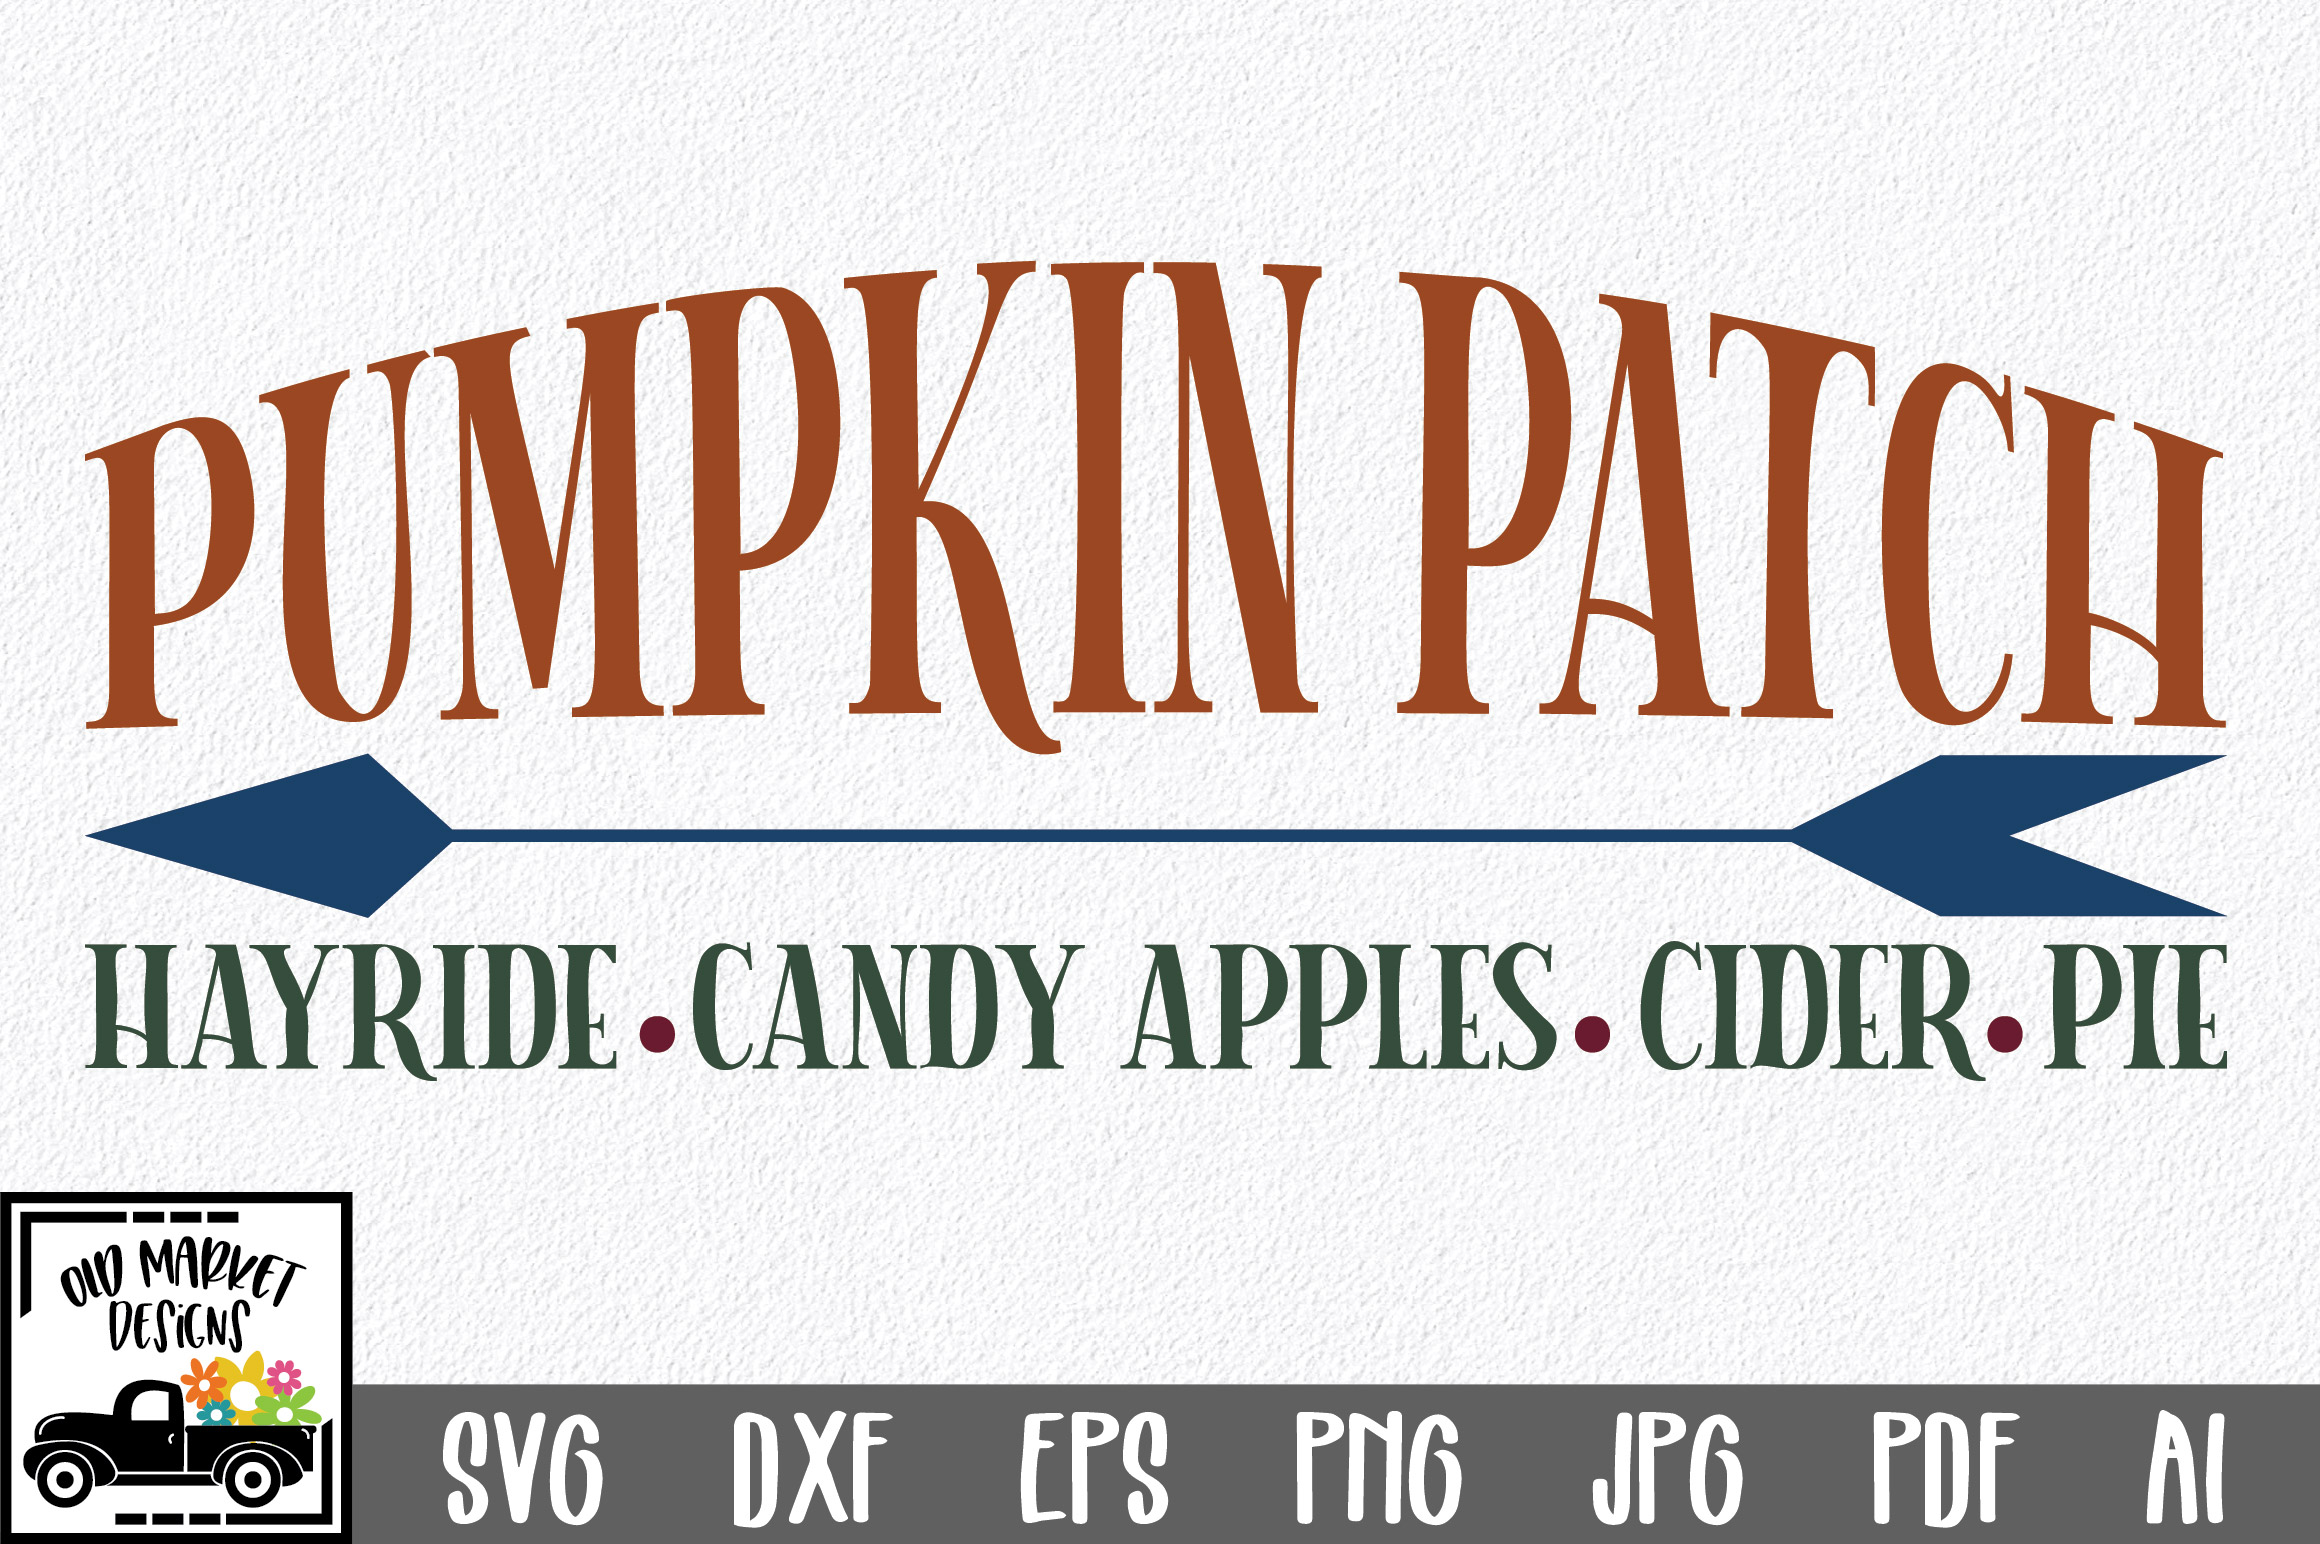 Download Free Pumpkin Patch Graphic By Oldmarketdesigns Creative Fabrica for Cricut Explore, Silhouette and other cutting machines.